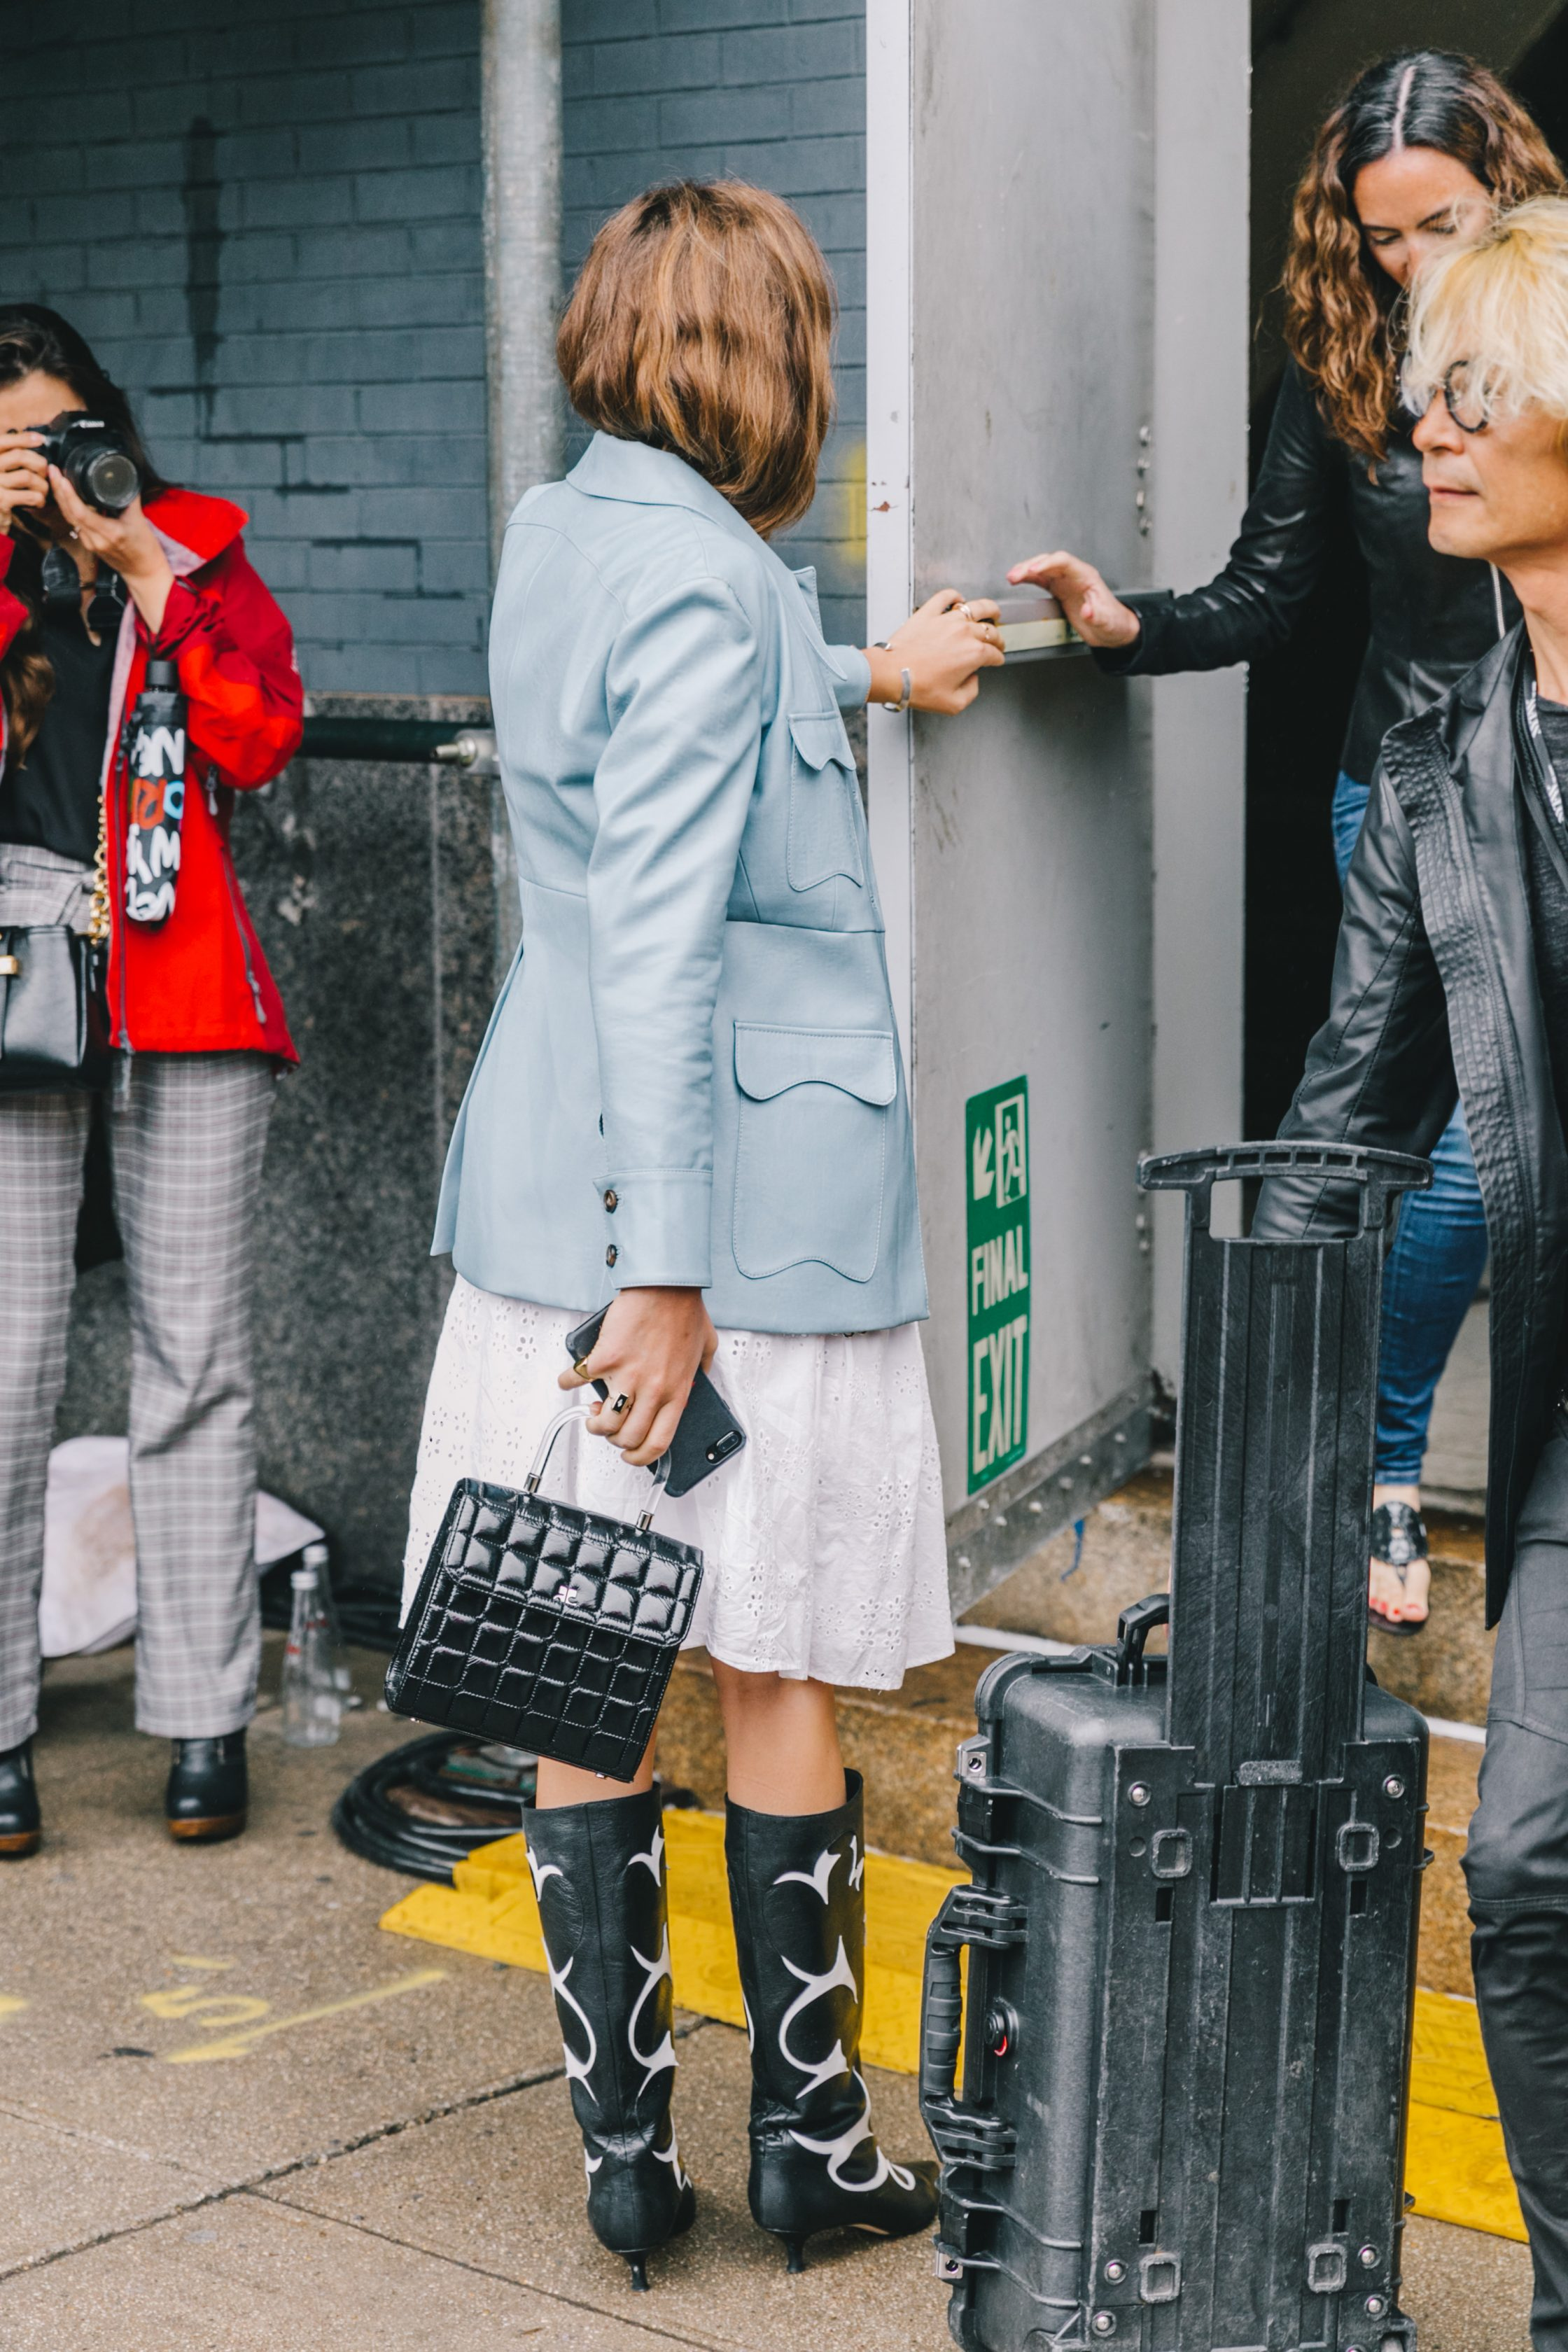 Spring Summer 2019 Street Style from New York Fashion Week by Collage Vintage